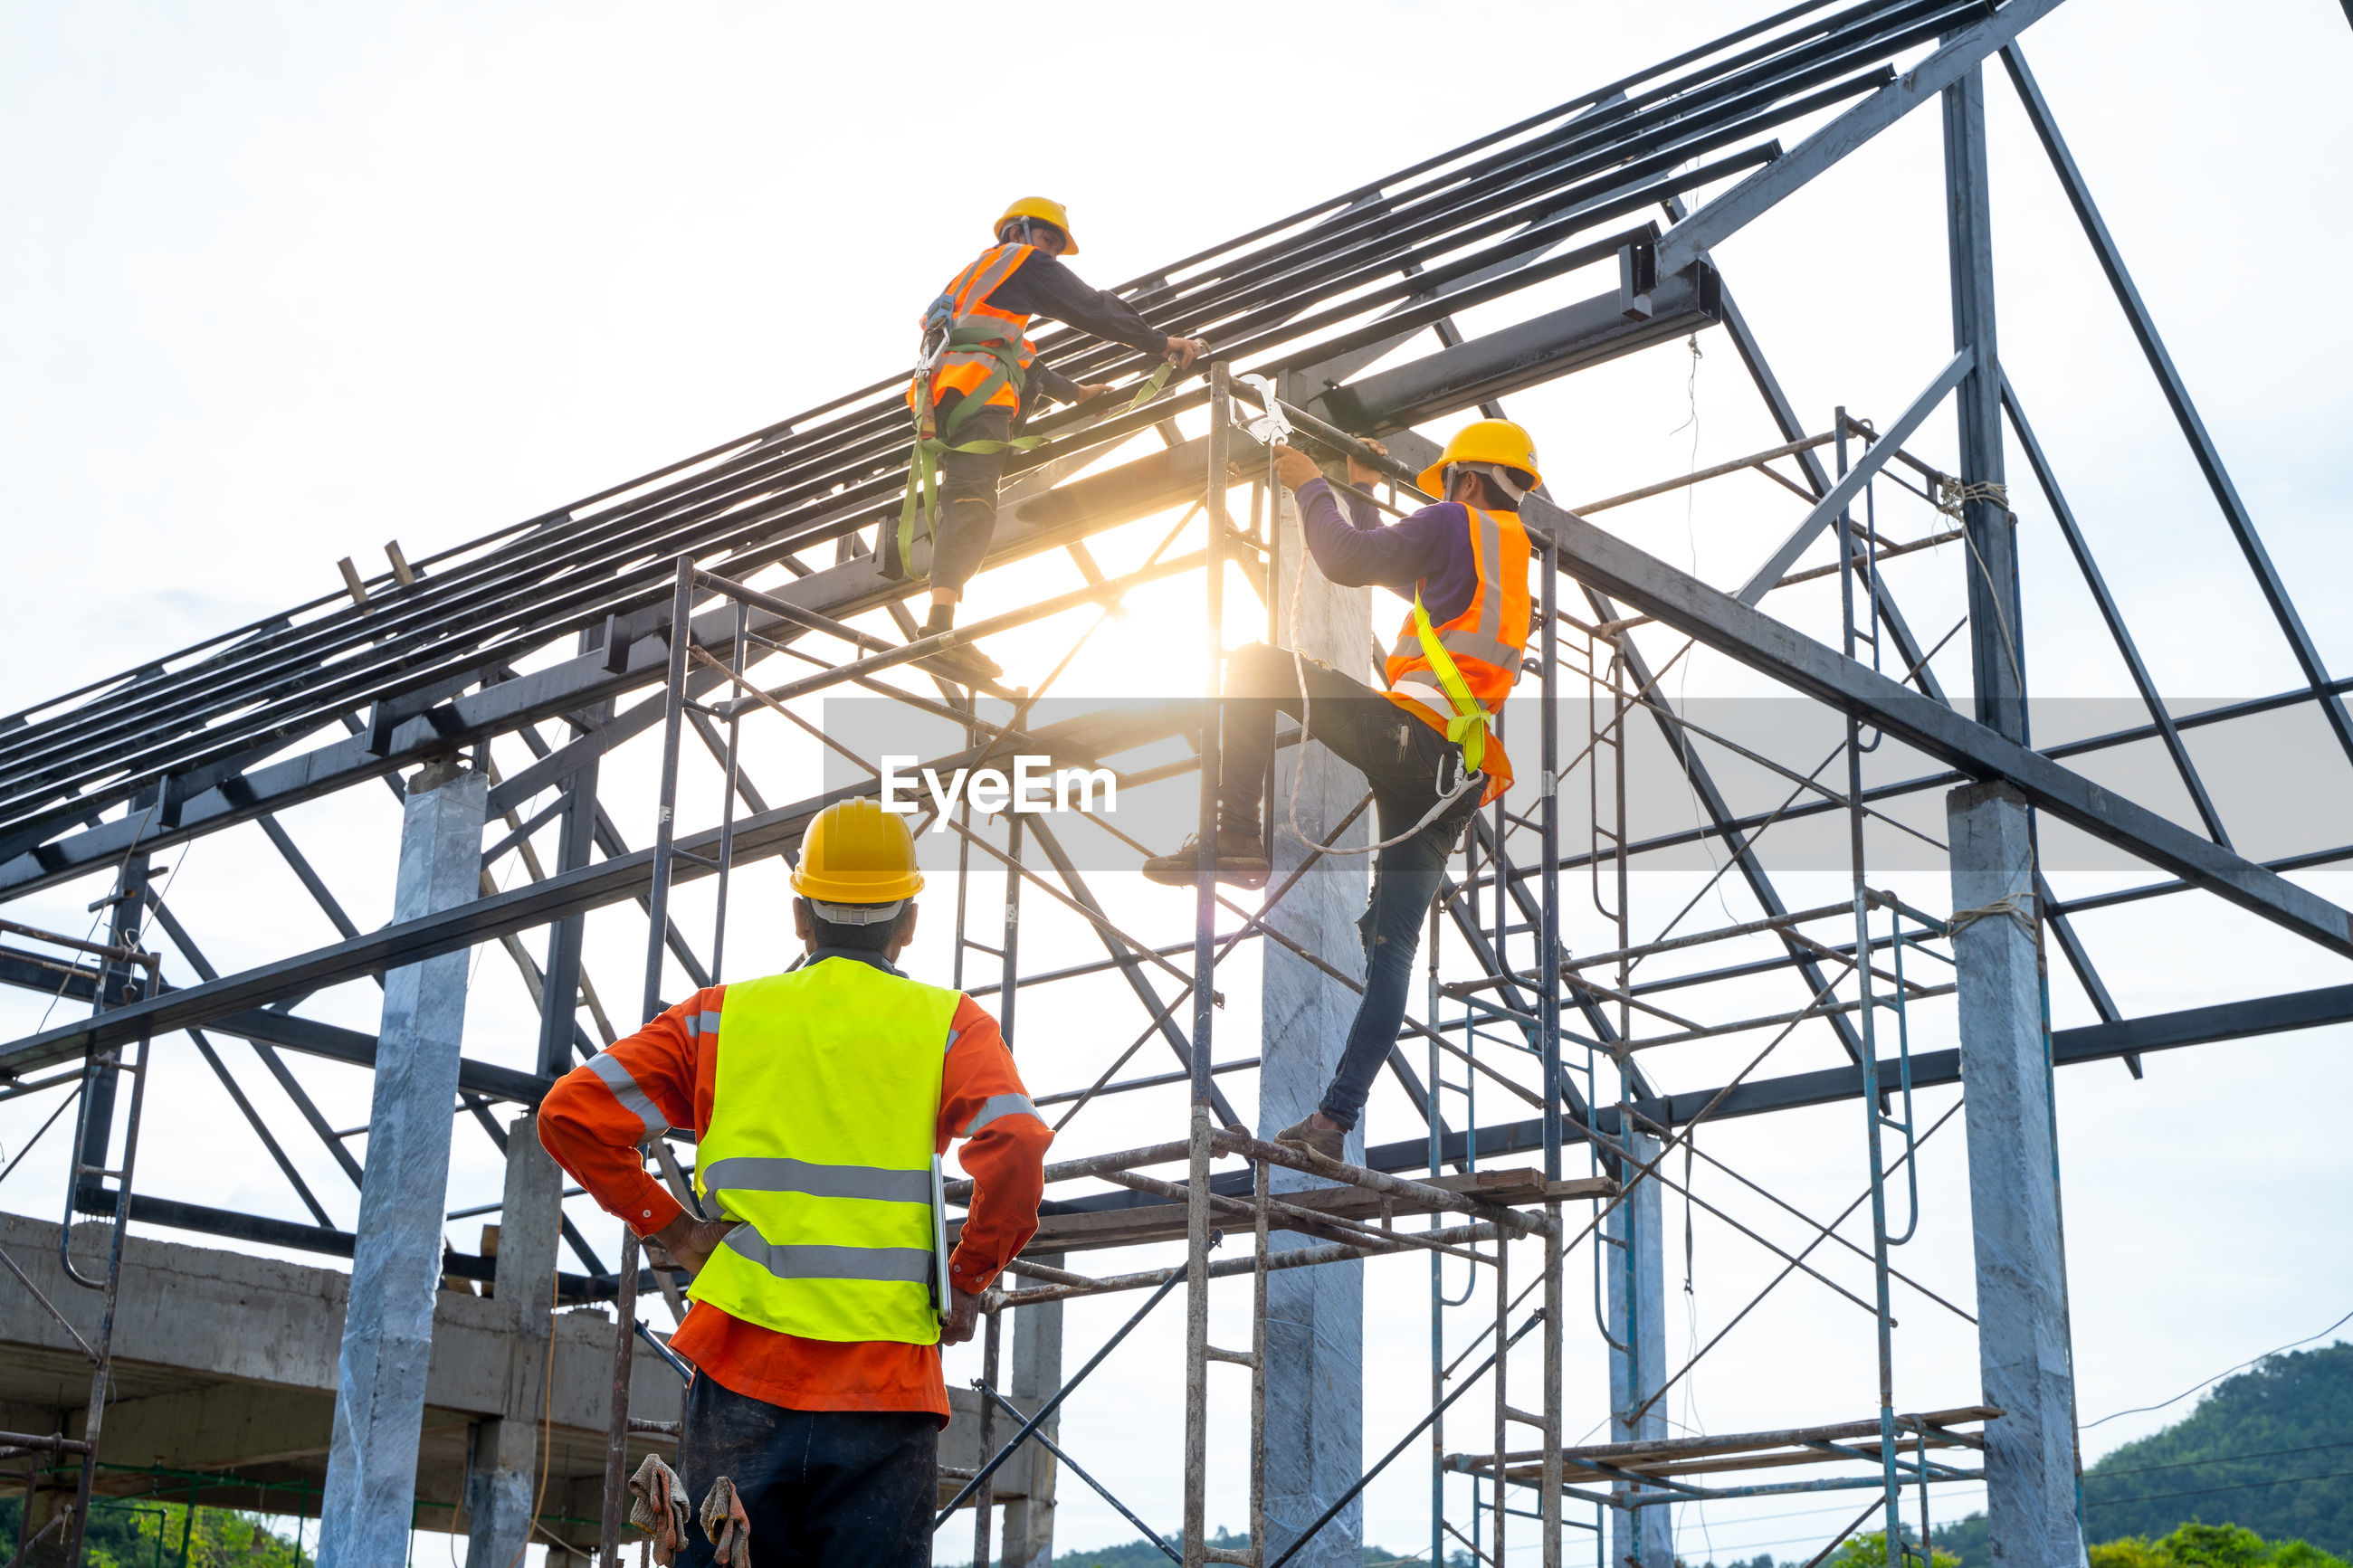 LOW ANGLE VIEW OF CONSTRUCTION WORKER AT CRANE